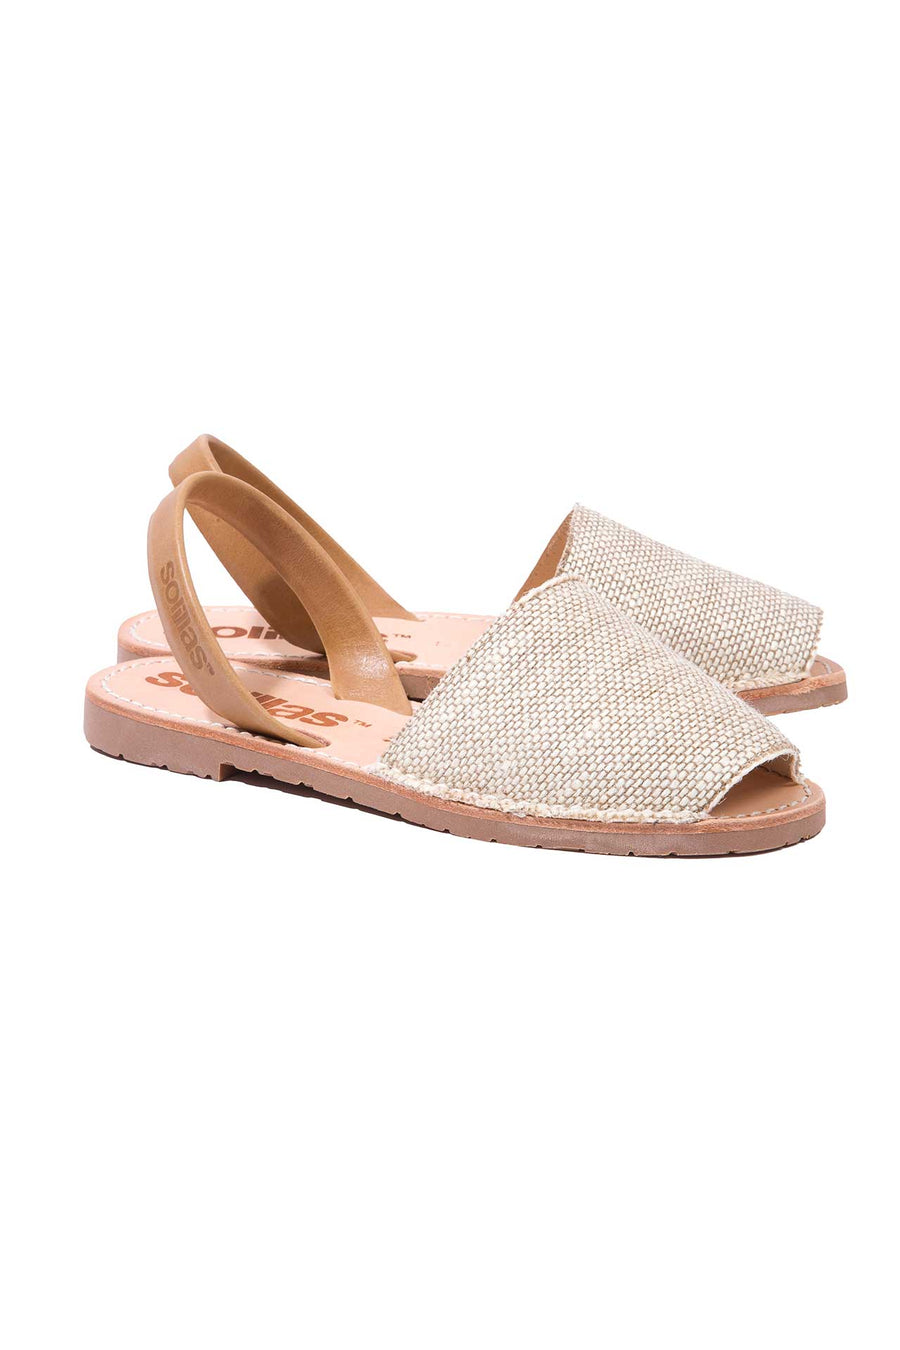 Natural Canvas Tan Leather Menorcan Sandals for Women, made in Spain by Solillas Australia, side view